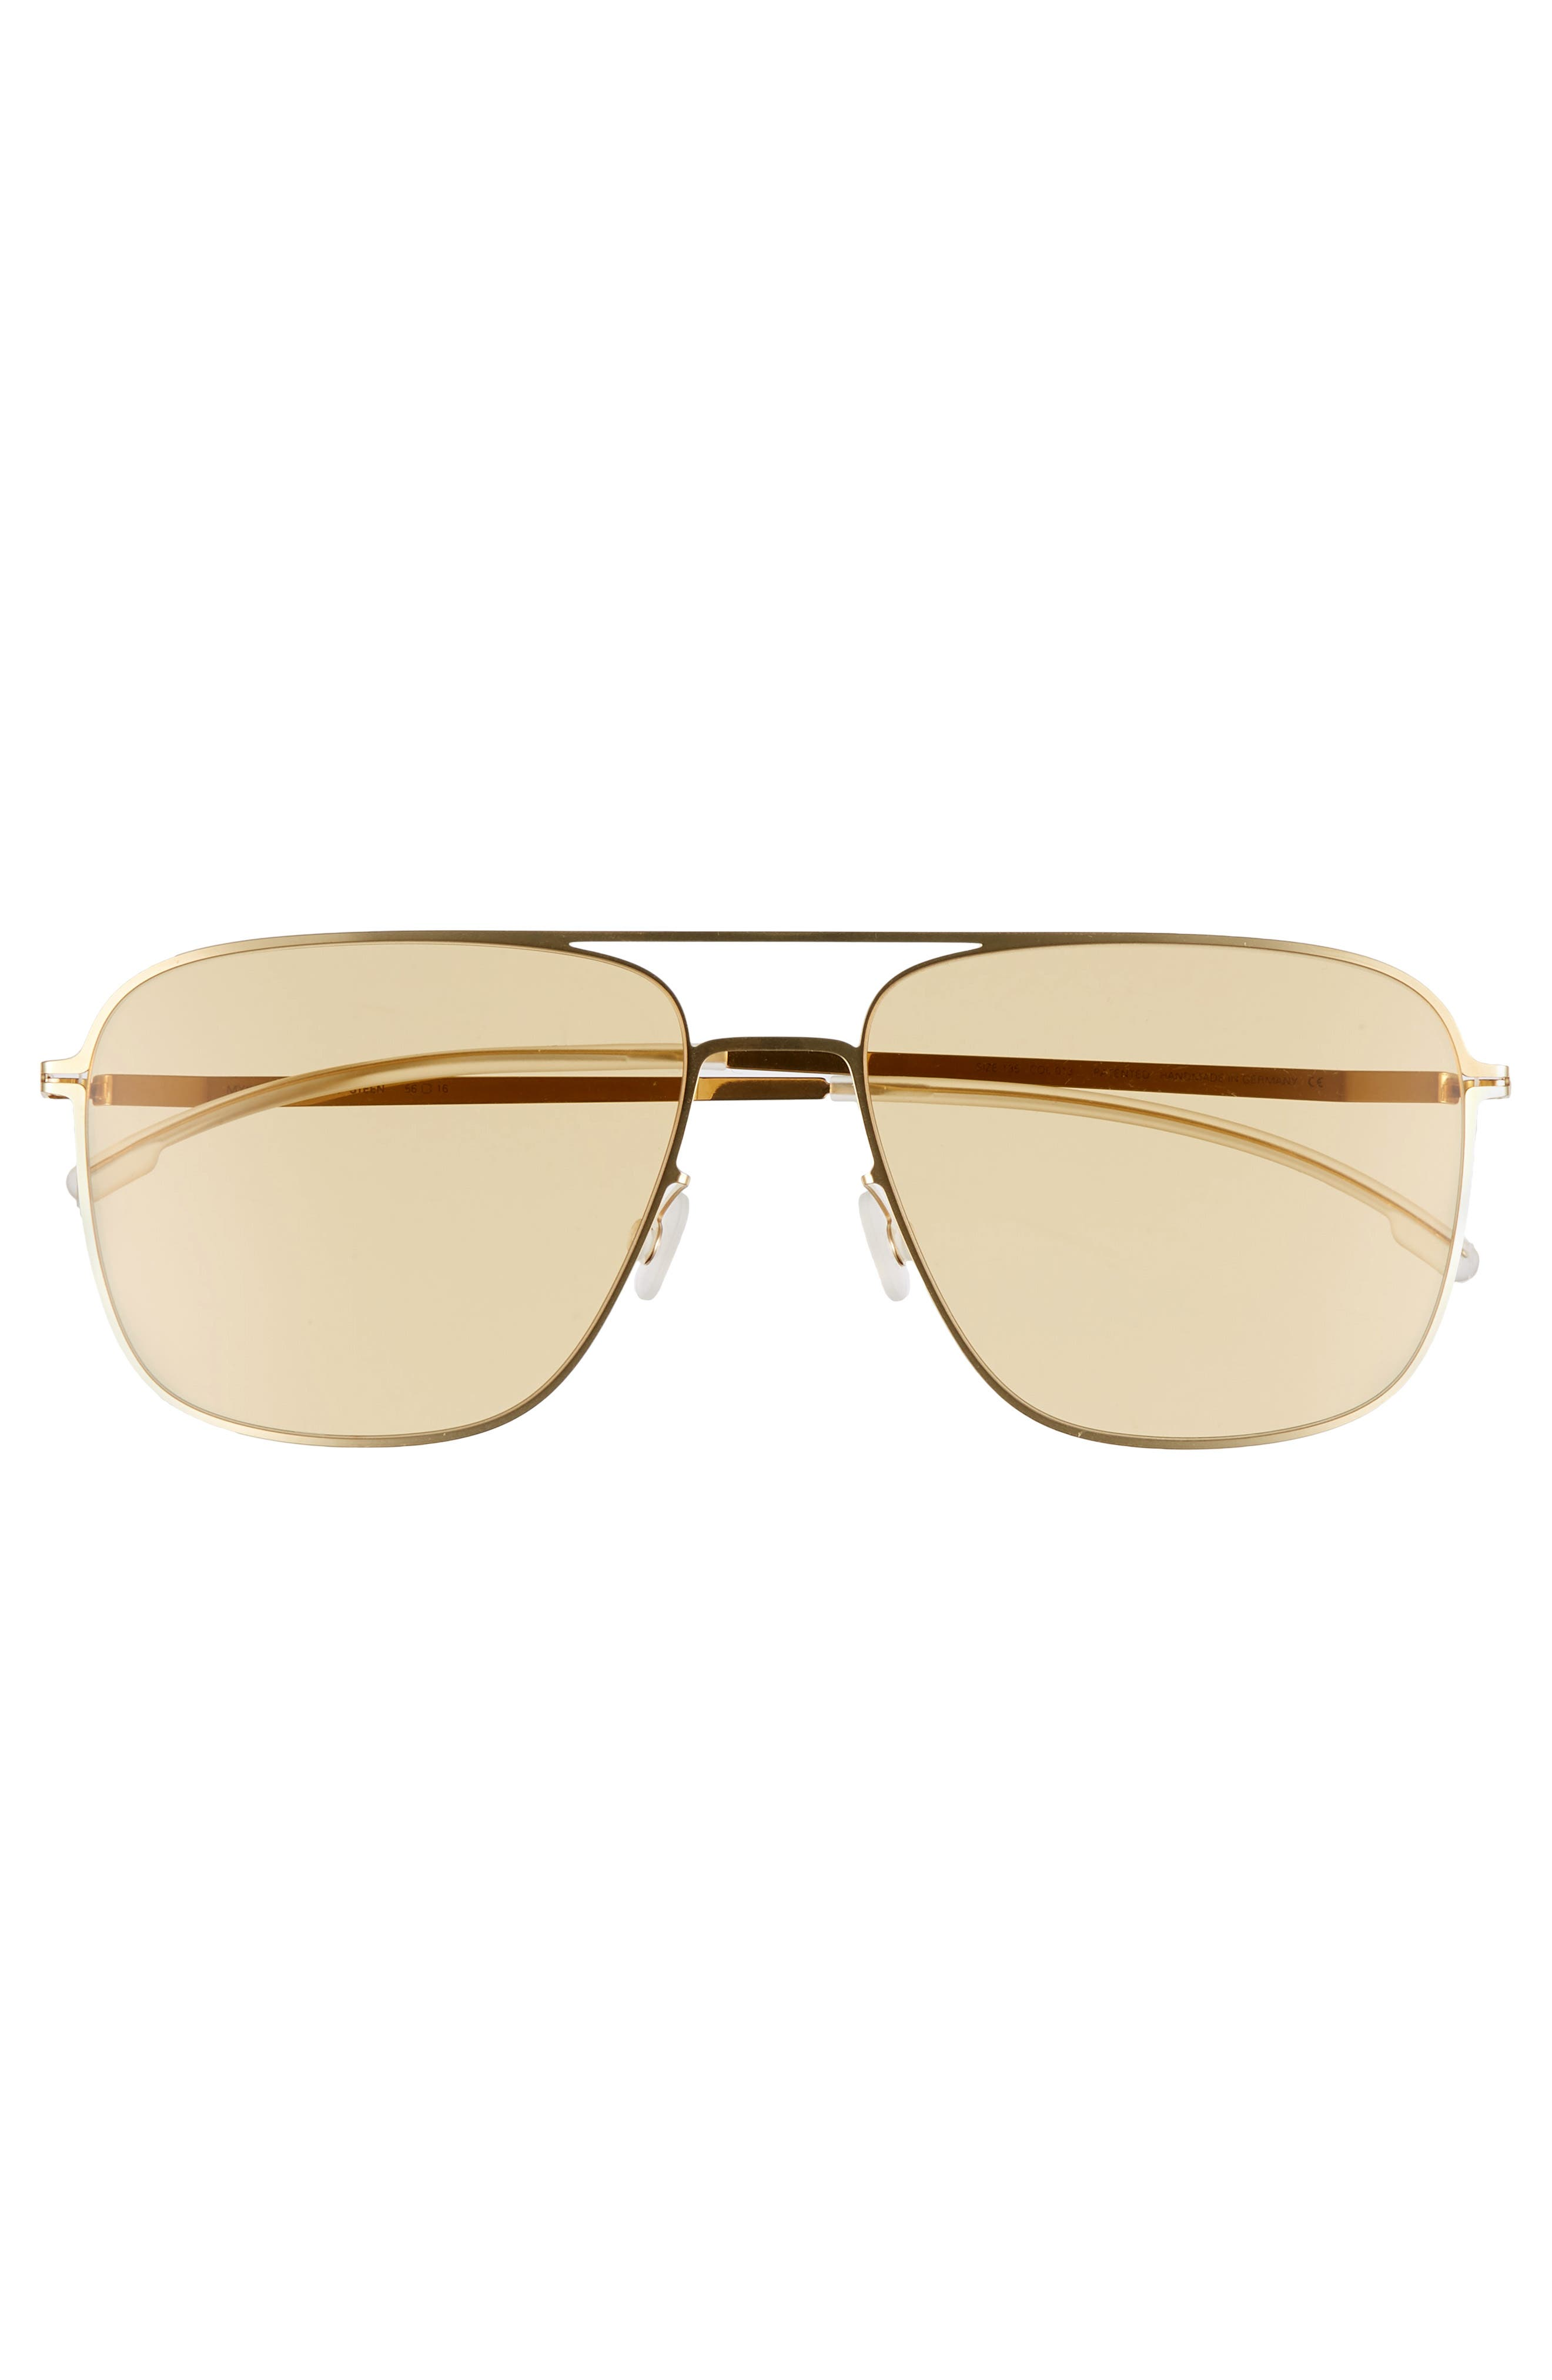 Steen 56mm Aviator Sunglasses,                             Alternate thumbnail 2, color,                             228